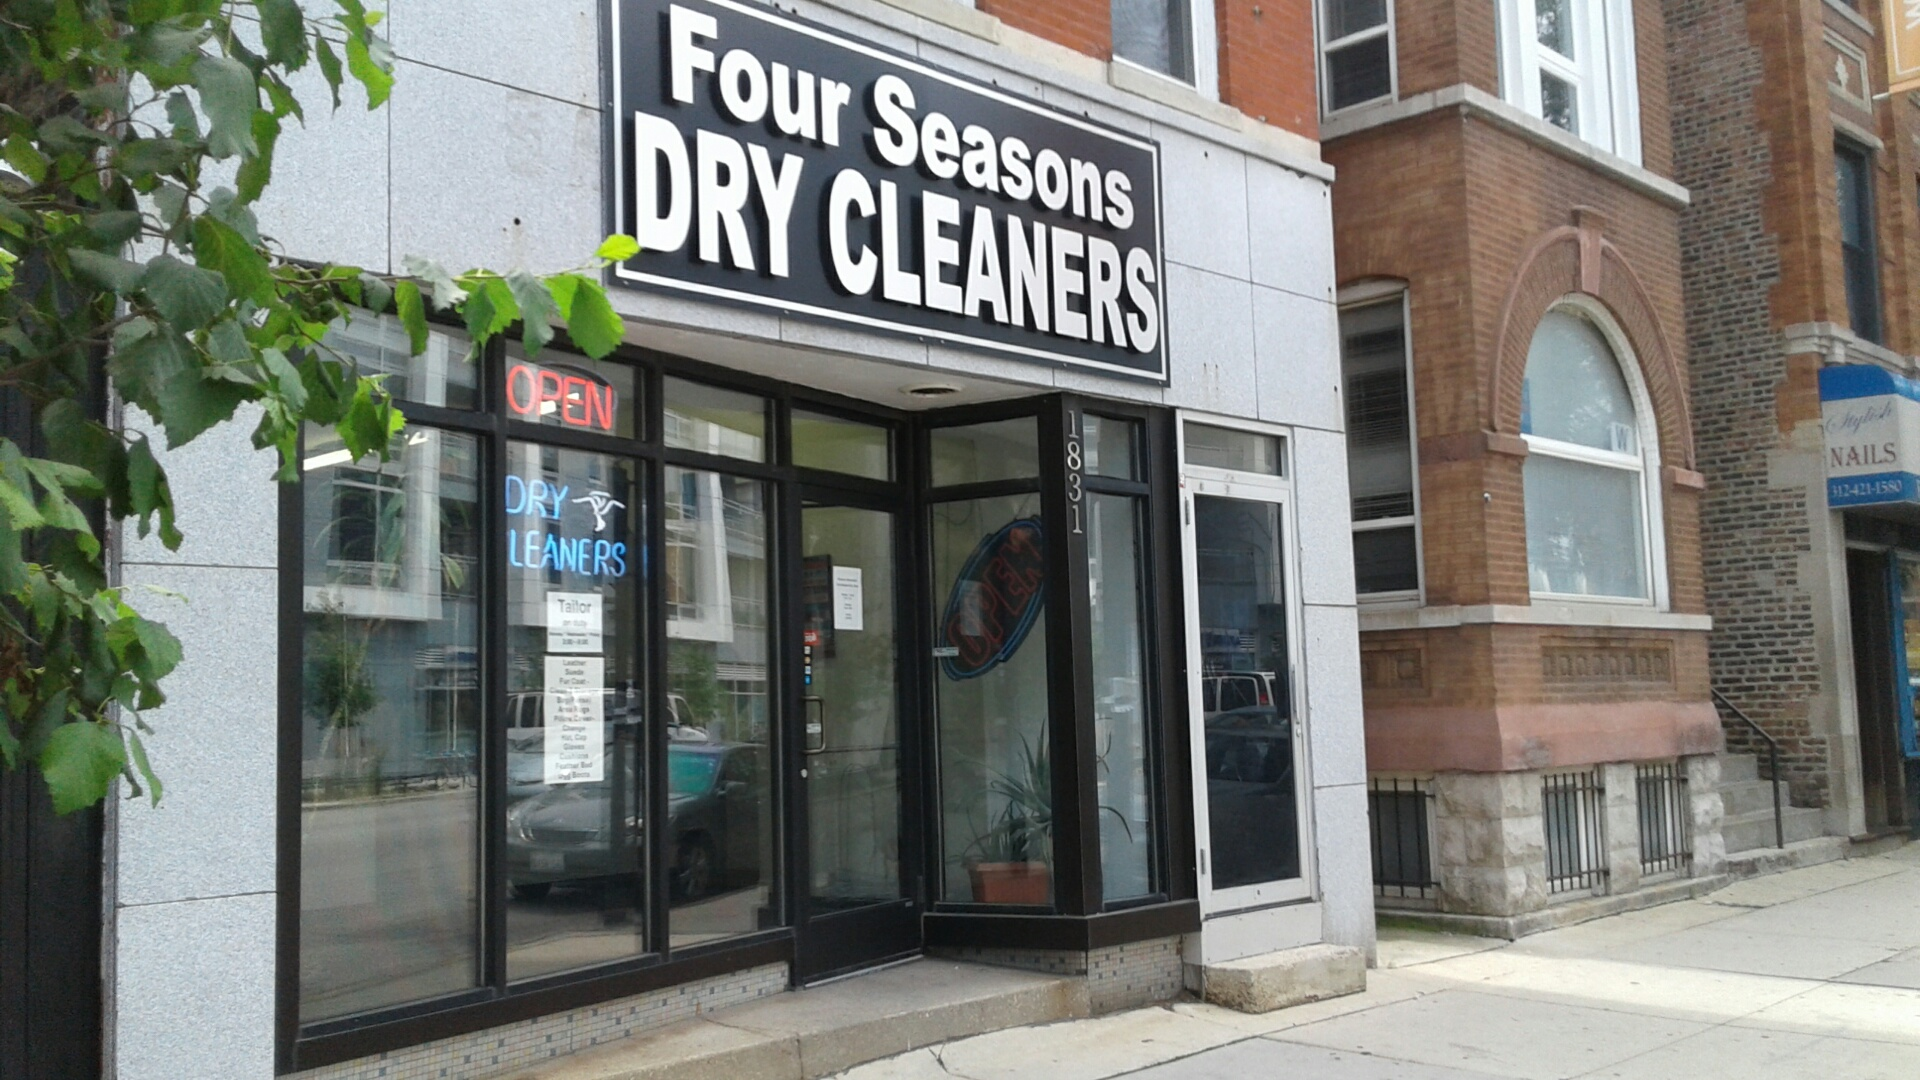 Four Seasons Dry Cleaners image 3